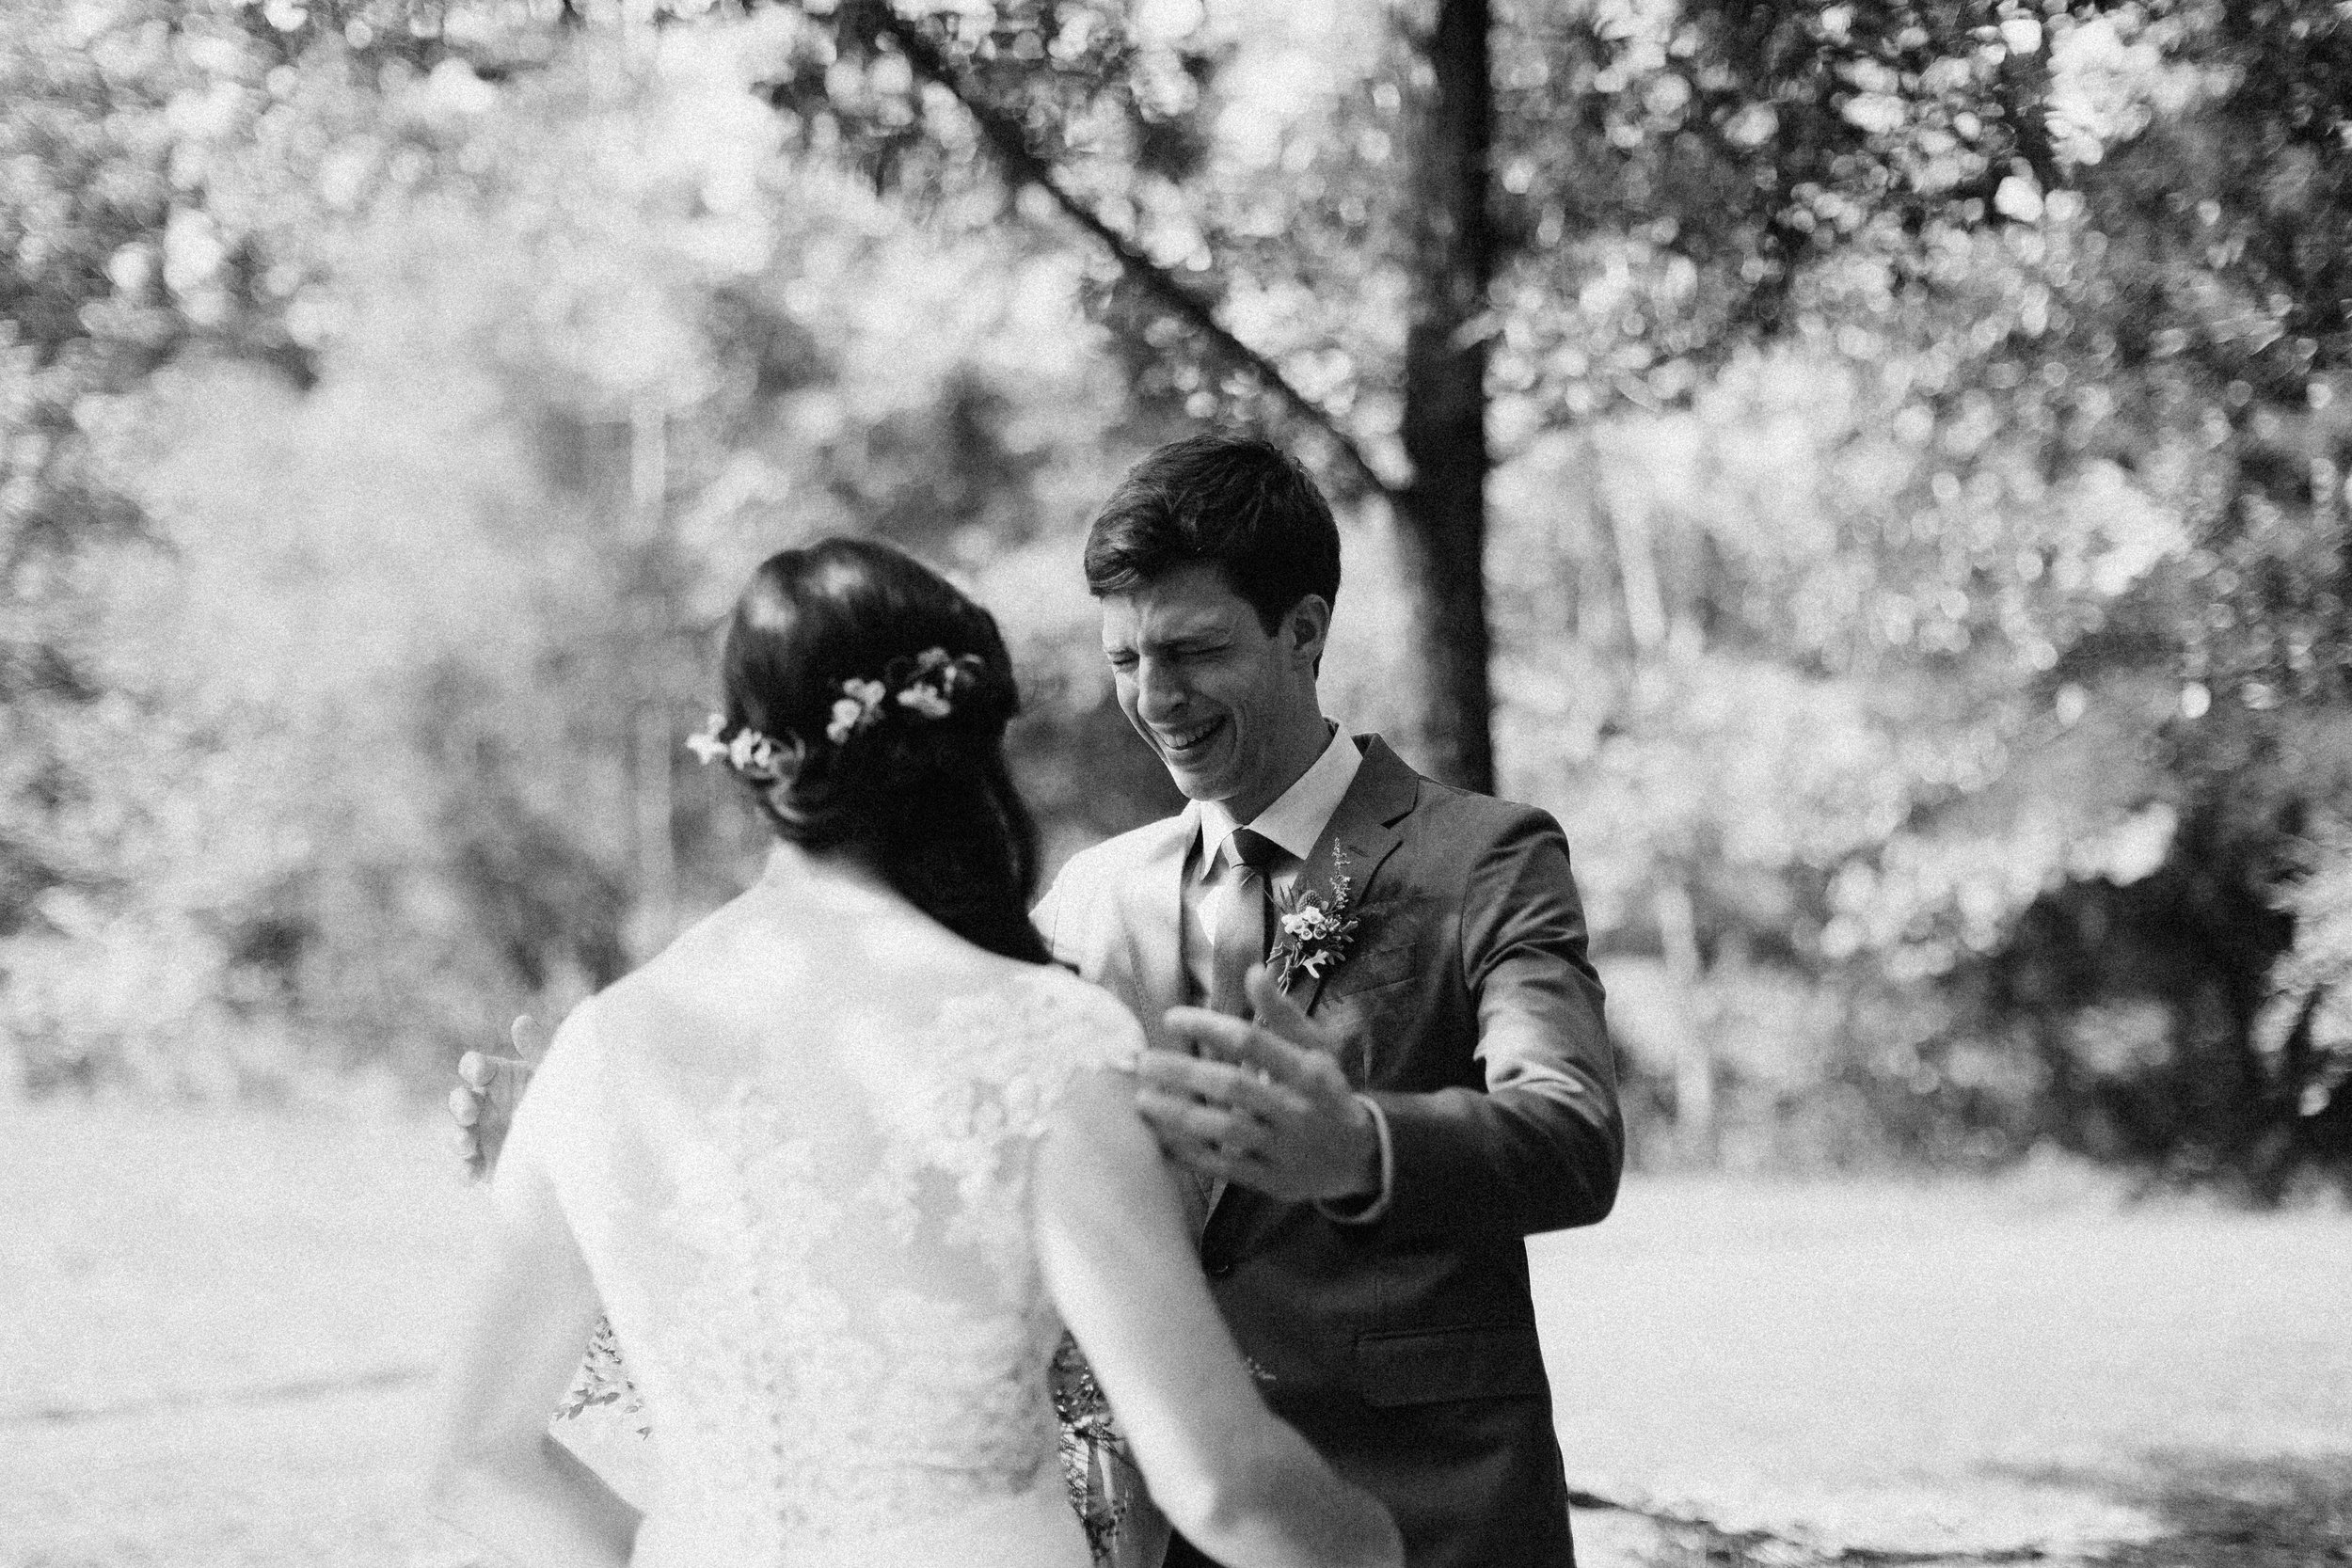 cleveland_georgia_mountain_laurel_farm_natural_classic_timeless_documentary_candid_wedding_emotional_photojournalism_river_west_1243.jpg